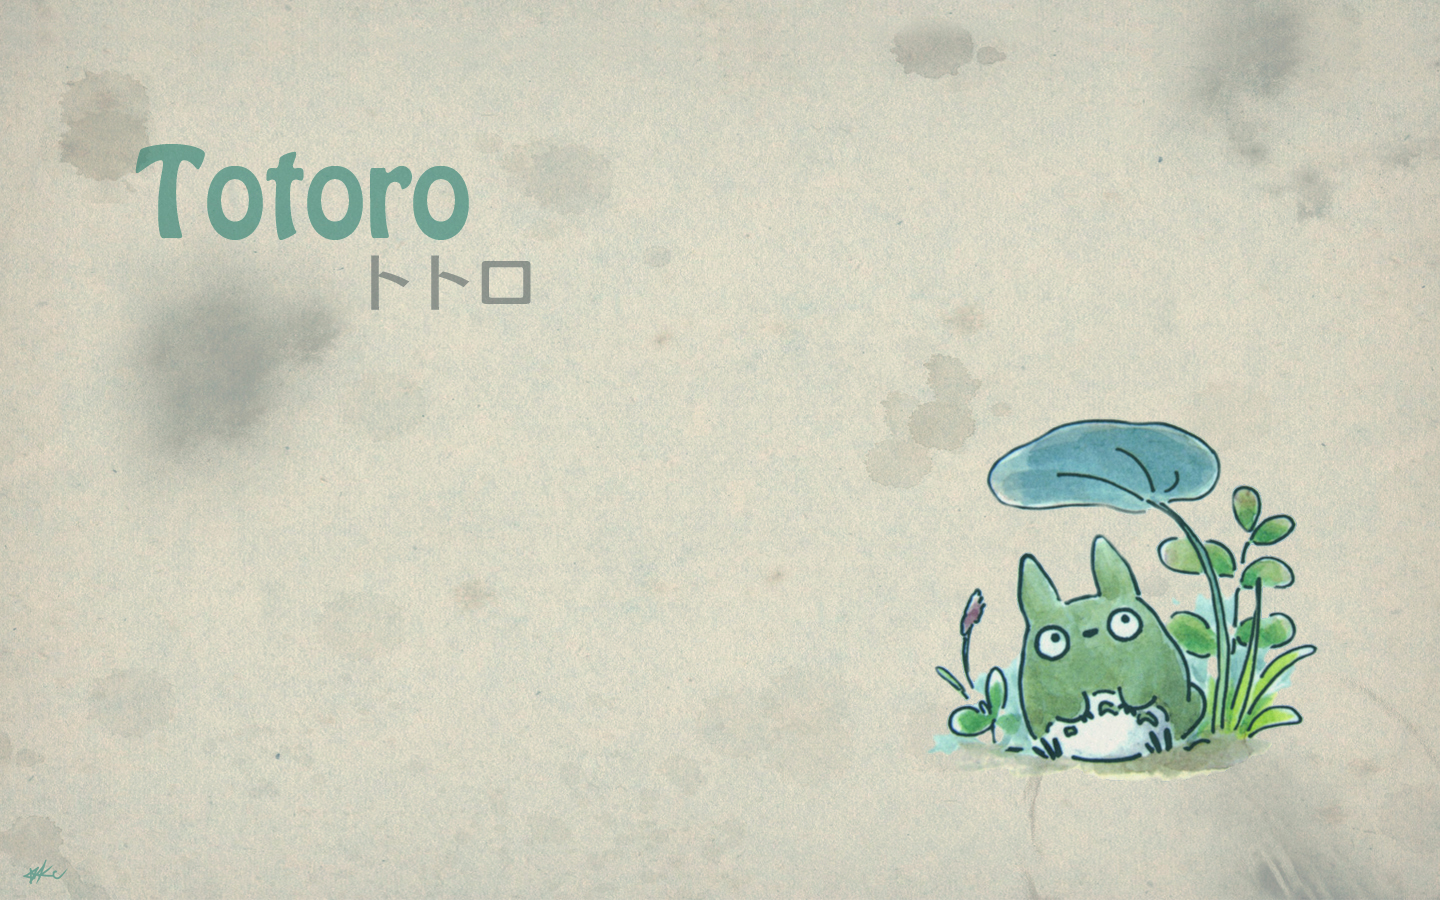 Totoro Wallpaper 655 Images Film